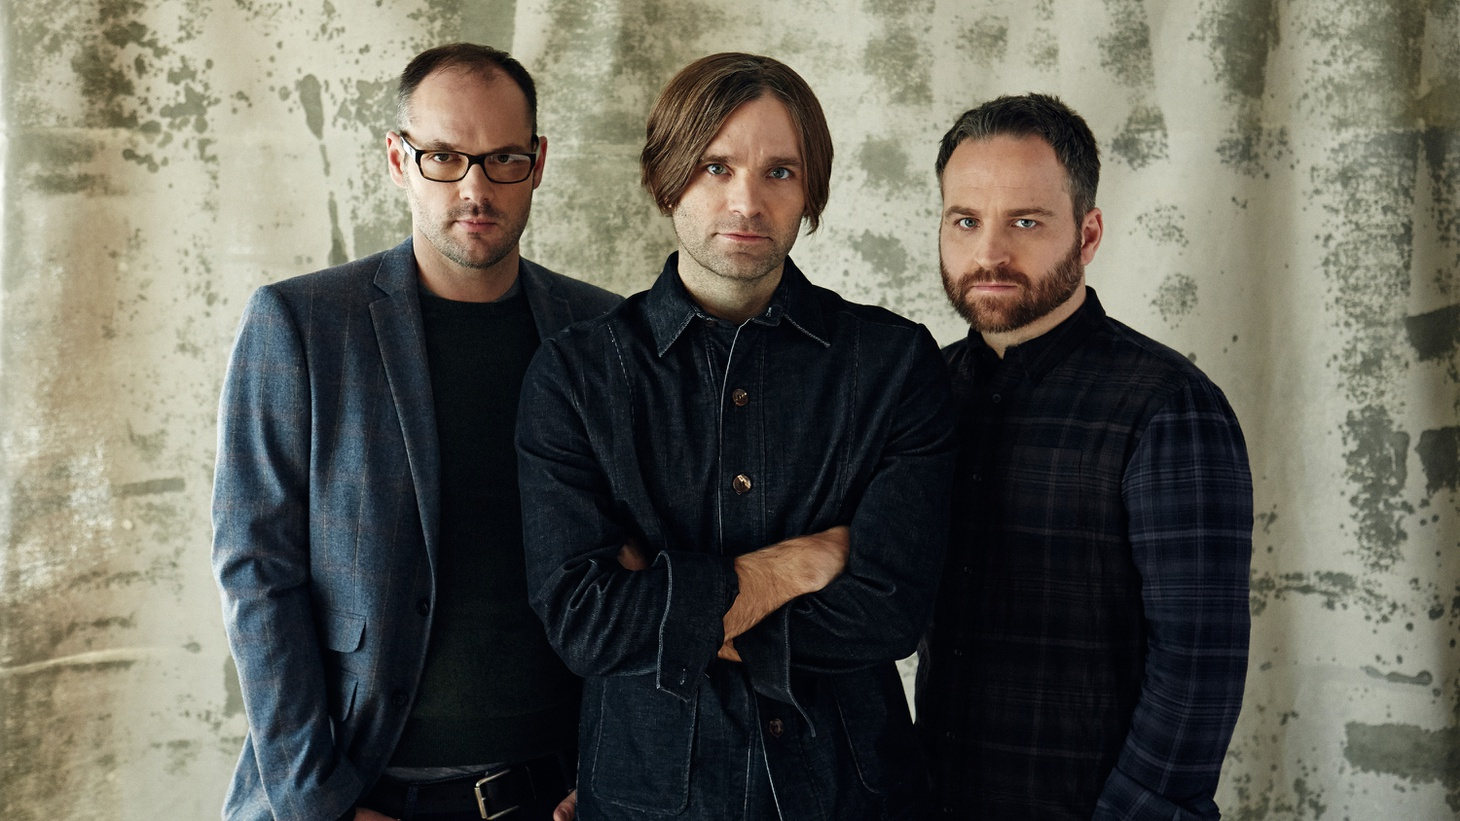 Death Cab for Cutie have been around for almost two decades and are charging forward with their first new album in four years, despite the absence of founding member Chris Walla.